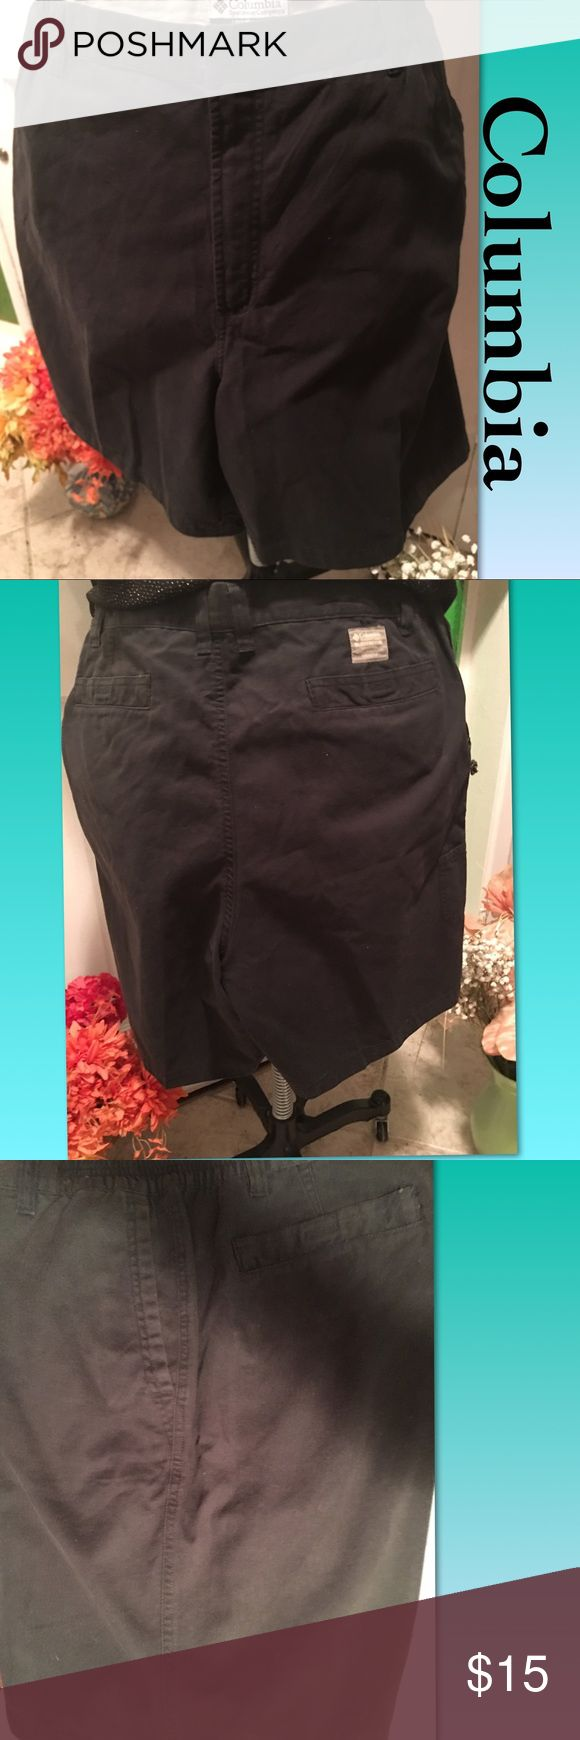 "Columbia Plus Size 20W Cool For Summer Shorts Columbia Sportswear Company-Black Cool Summer Shorts Plus Size 20W - Made of 💯% Cotton, there two side slit pockets, two back Velcro pockets and a snap and zipper closure. There's also Measurements laying flat are 20"" waist; 8"" inseam-Crotch to hem; 20.5"" waist to hem. Excellent Condition! Columbia Shorts"